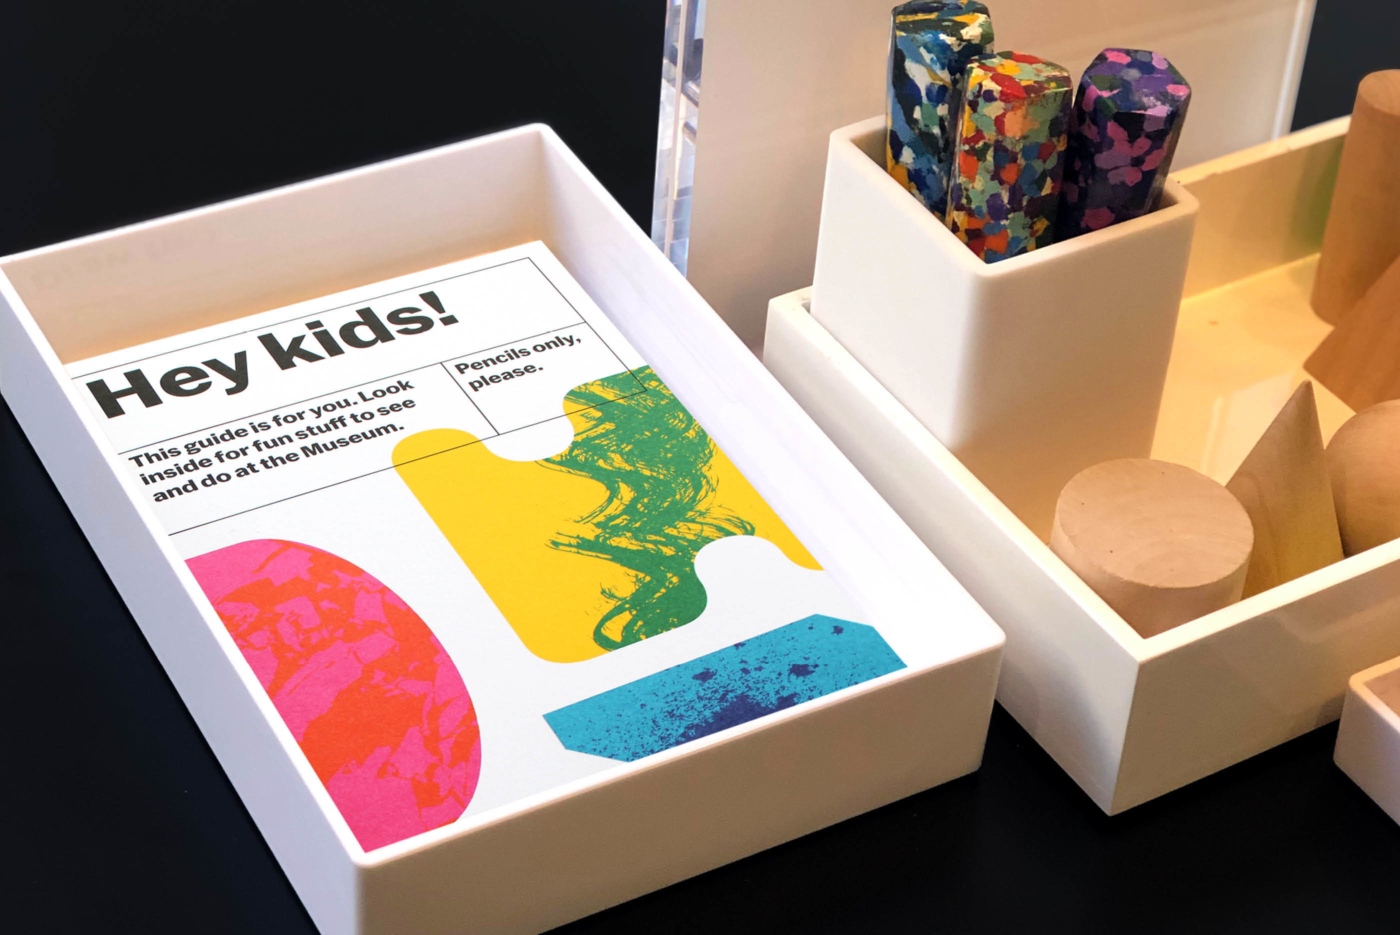 Llwebsite Moma Kidsguide5